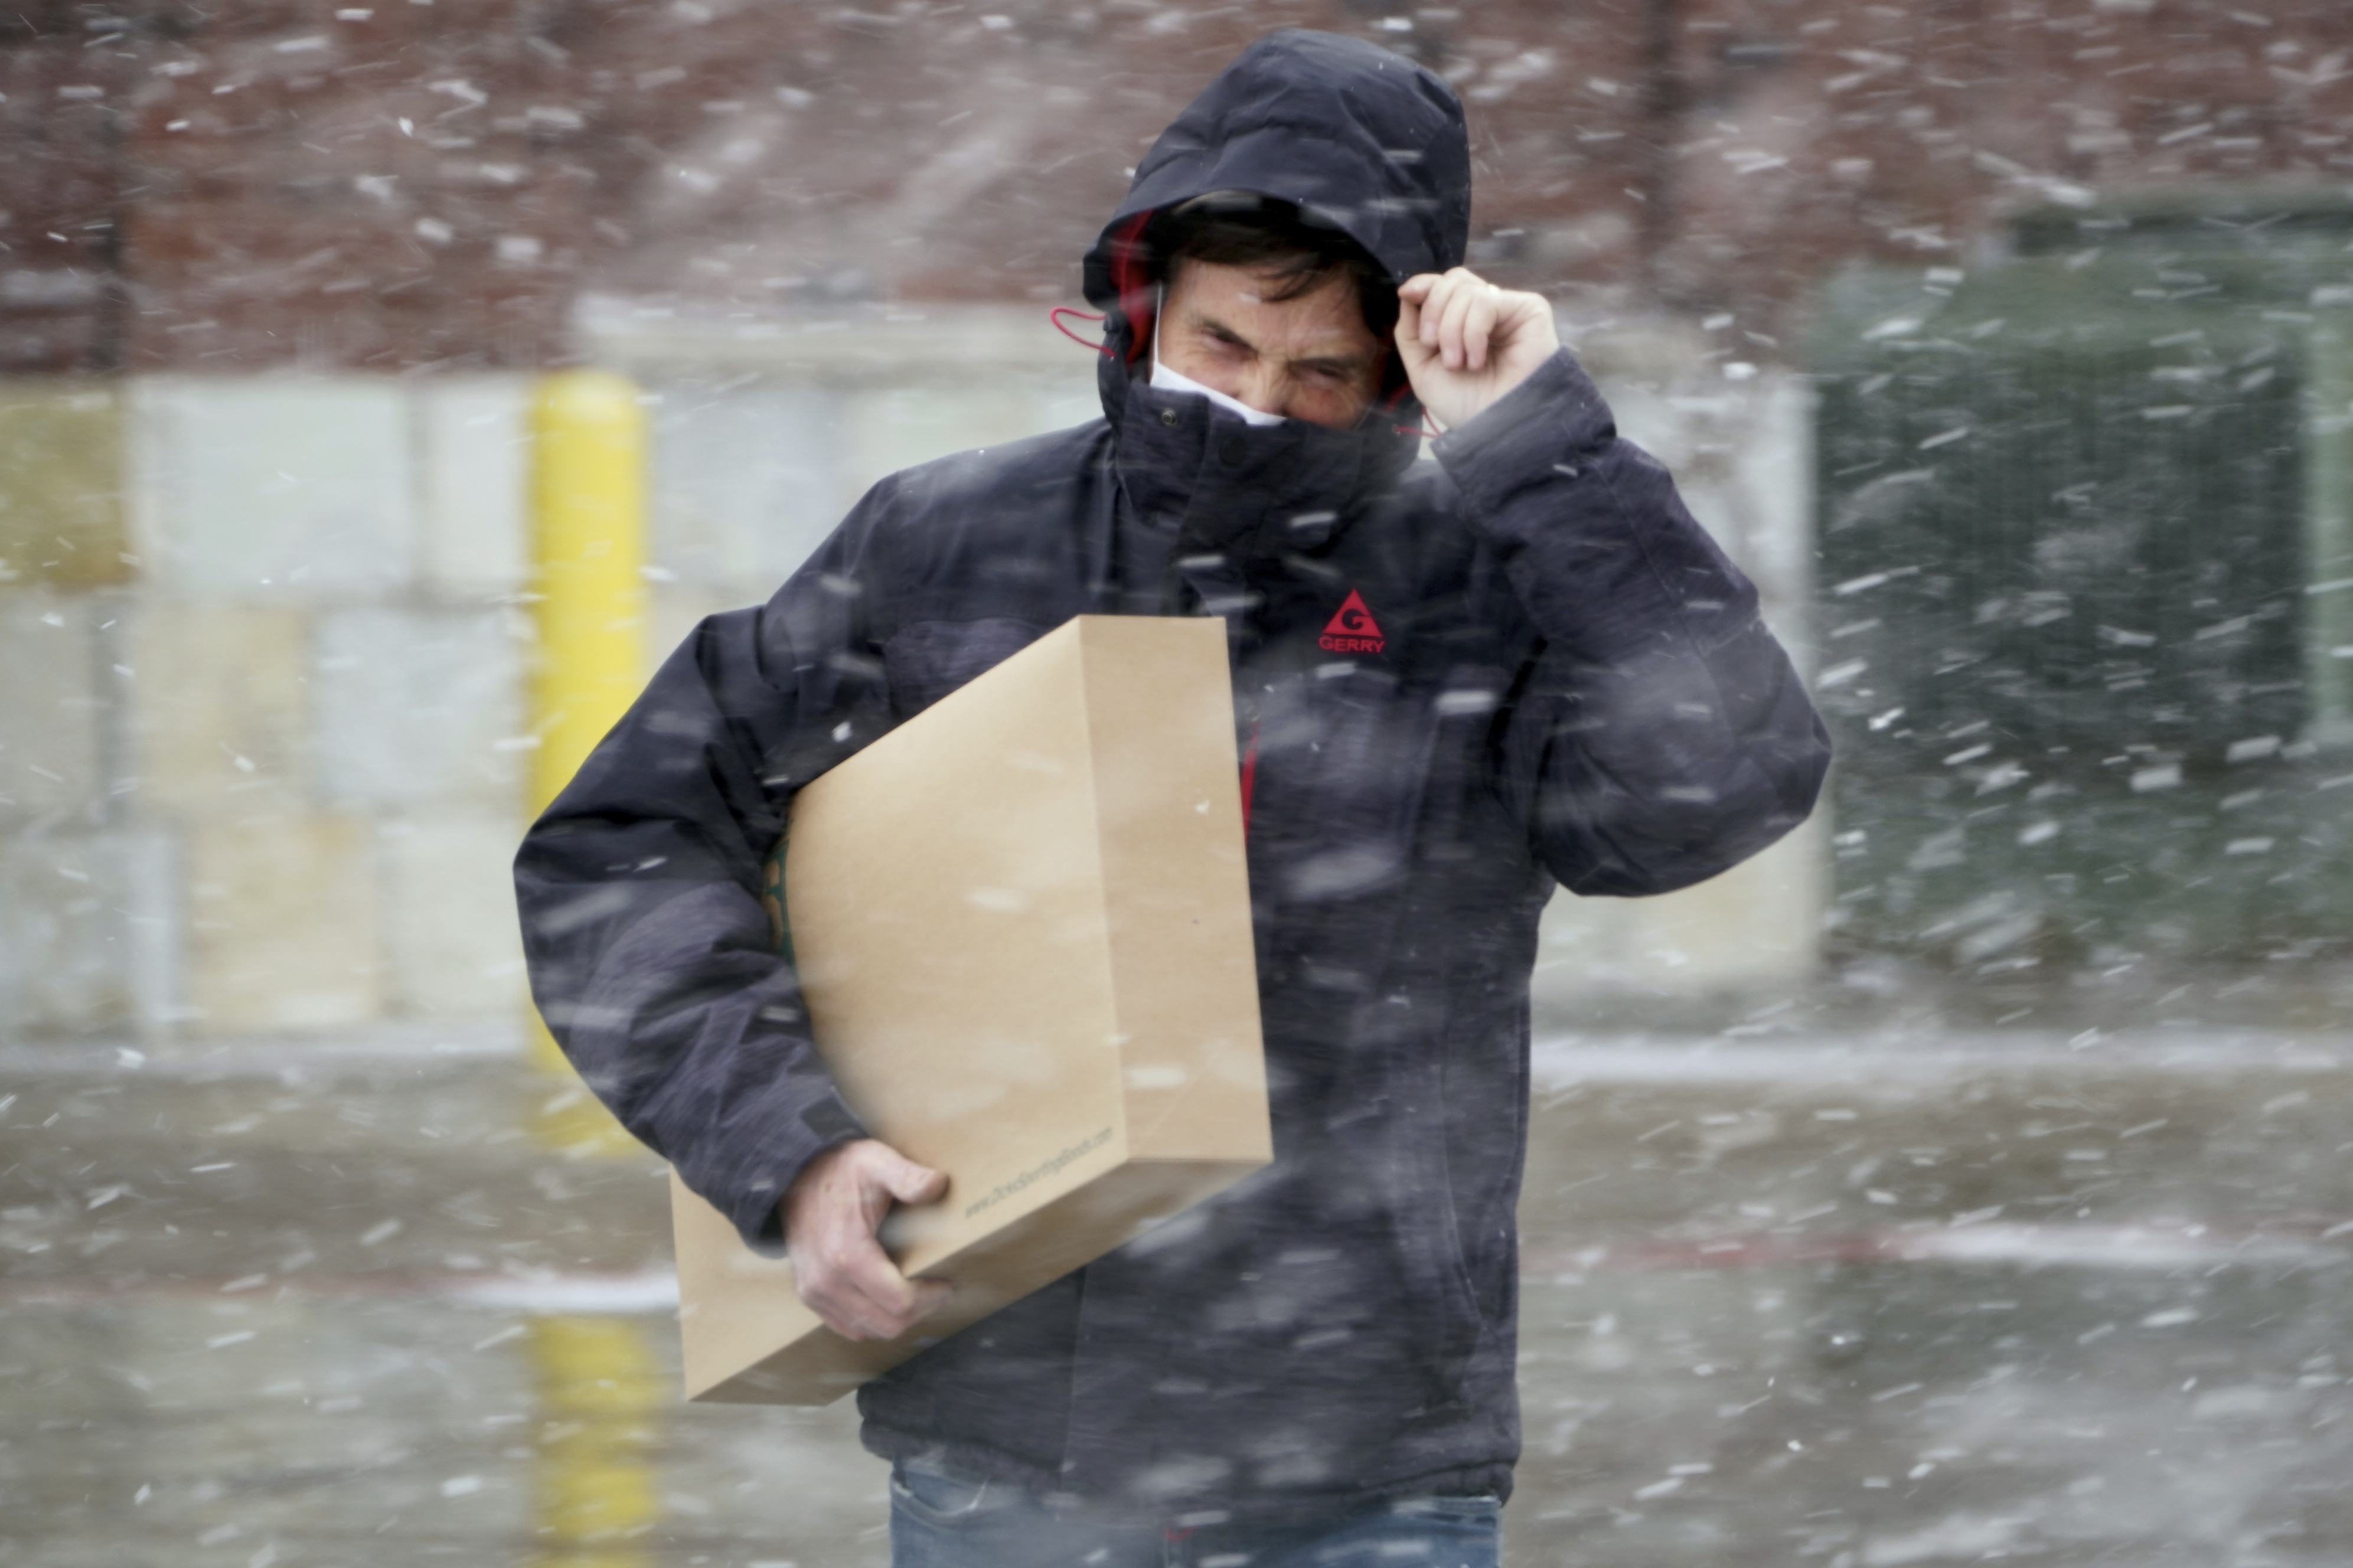 A shopper carries a box as he walks to his vehicle in blowing snow in Omaha., Wednesday, Dec. 23, 2020. Retailers saw a mixed bag in 2020 due to the pandemic. Many smaller stores struggled, banking on the holiday shopping season, while big box stores remained open and emphasized curbside pickup and delivery. Online retailers like Amazon grew their market share, too. (AP)